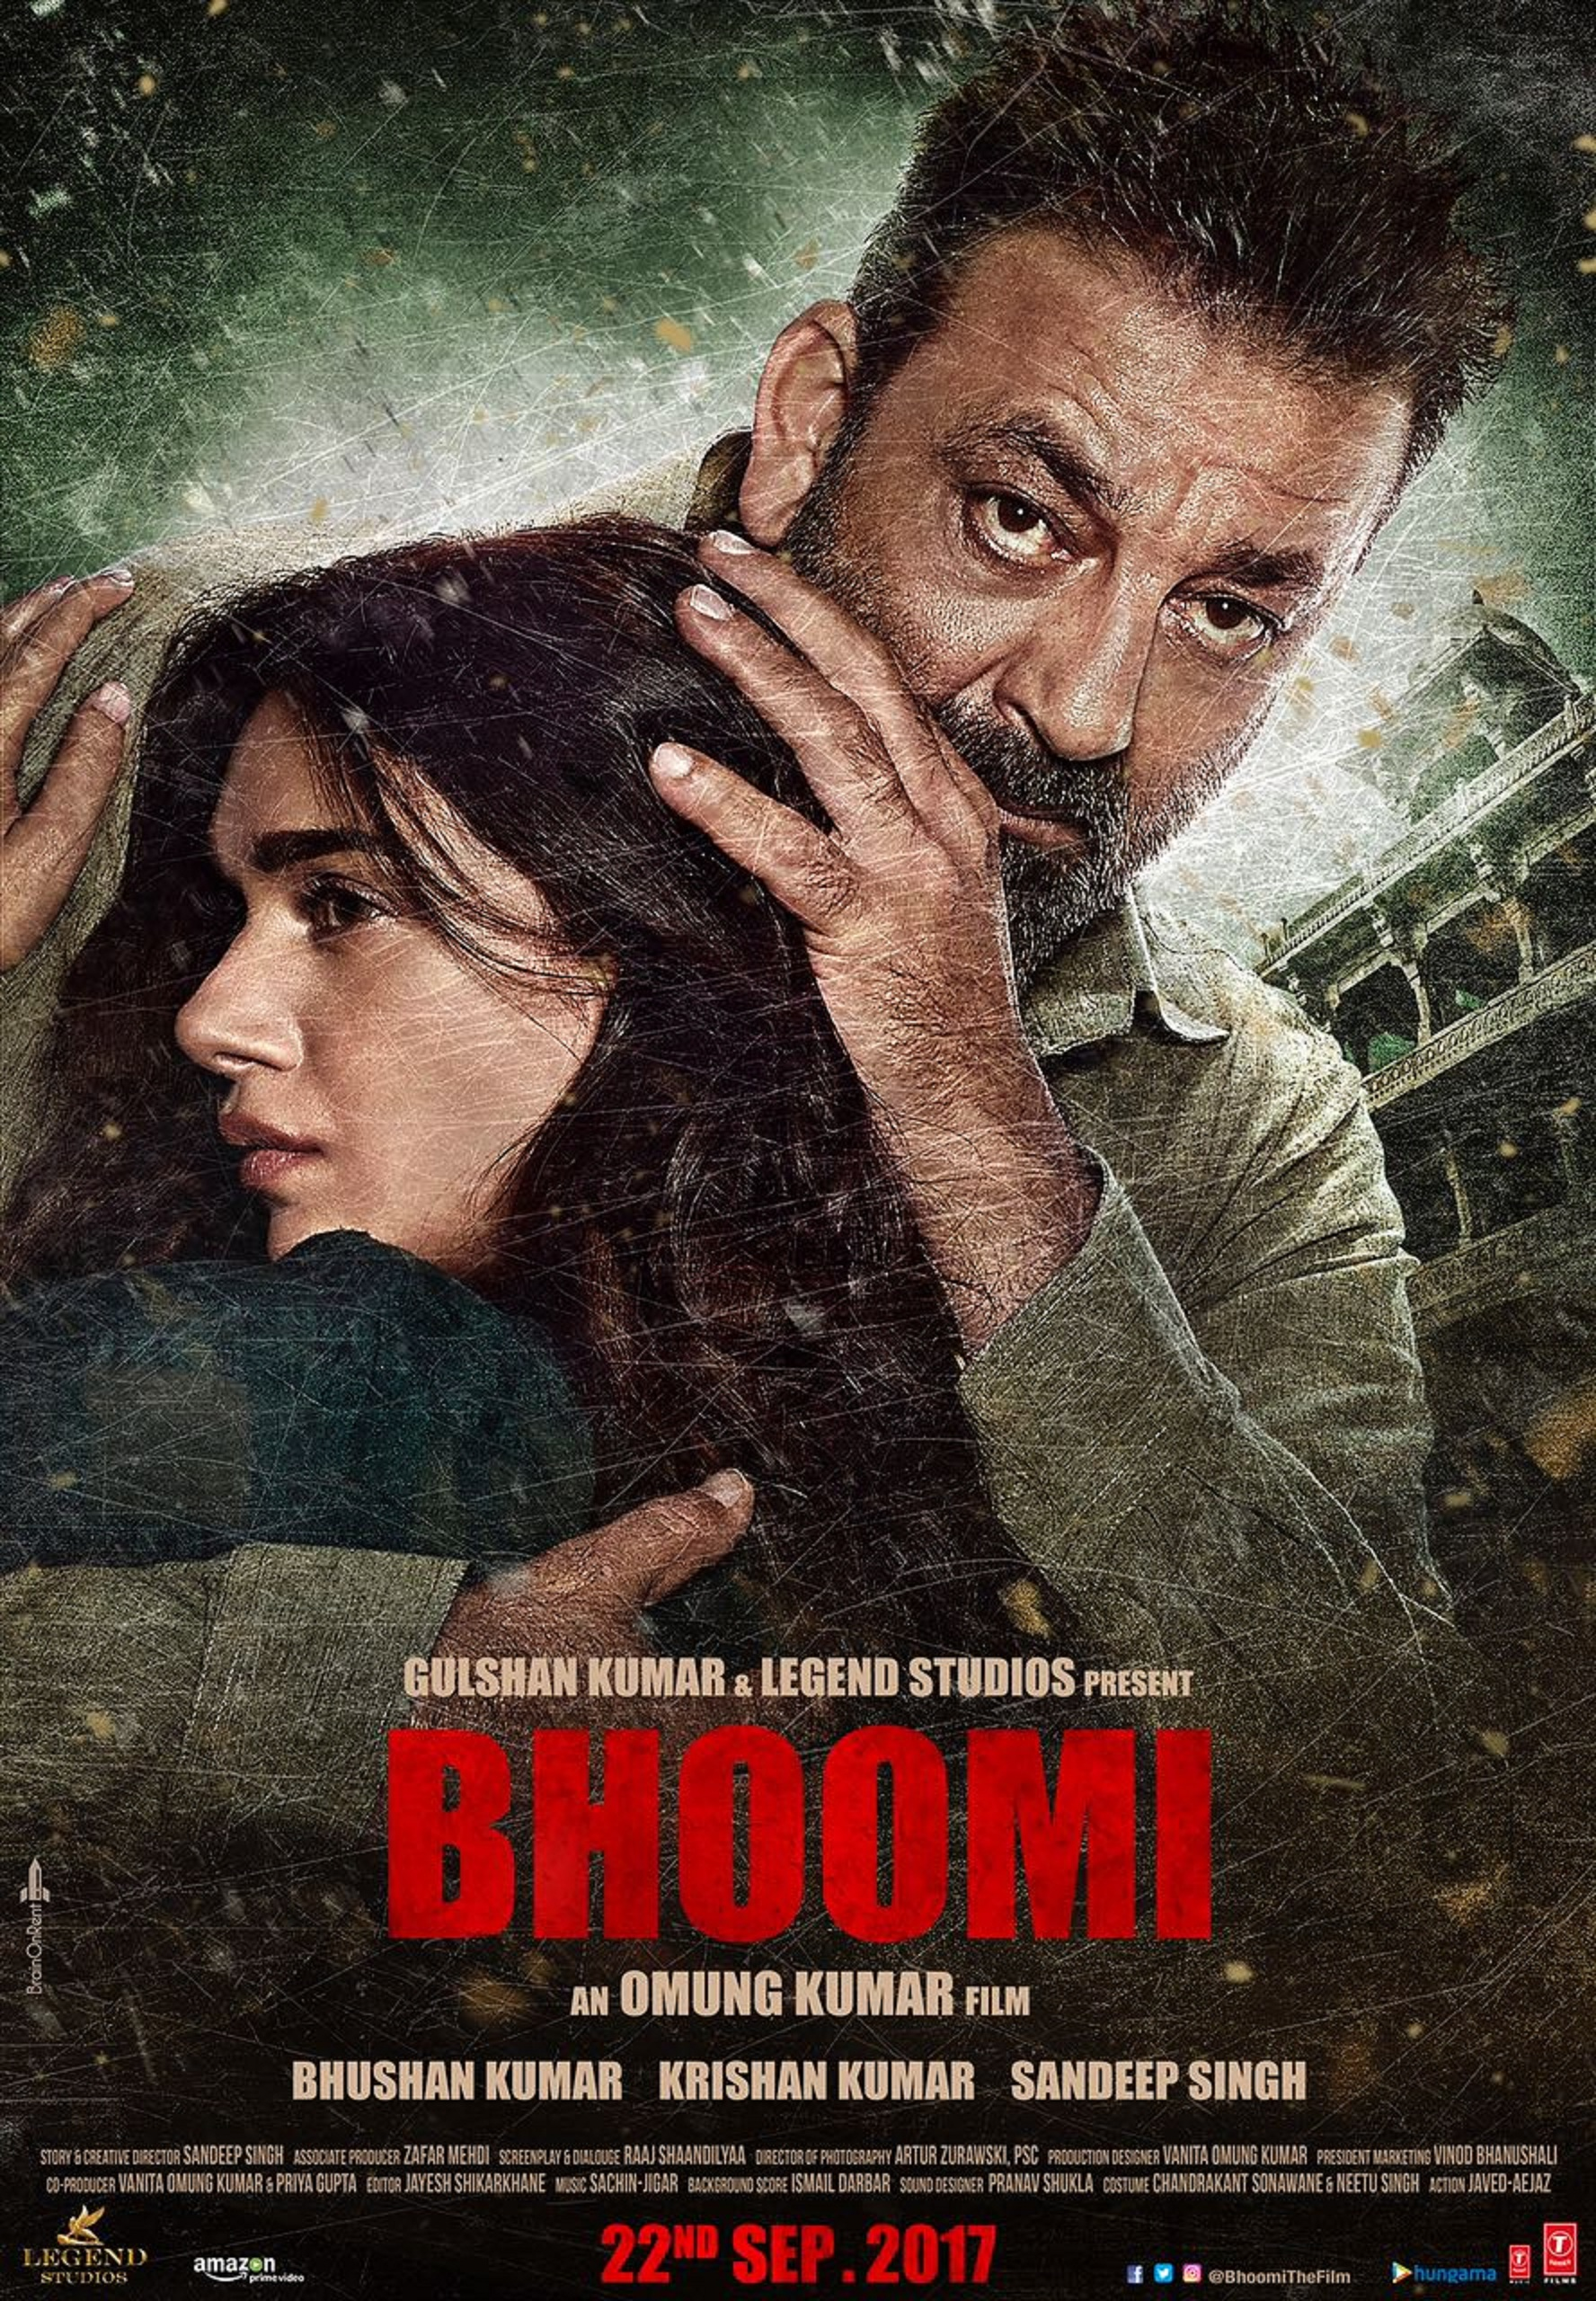 Bhoomi Movie Review Release Date Songs Music Images Official Trailers Videos Photos News Bollywood Hungama